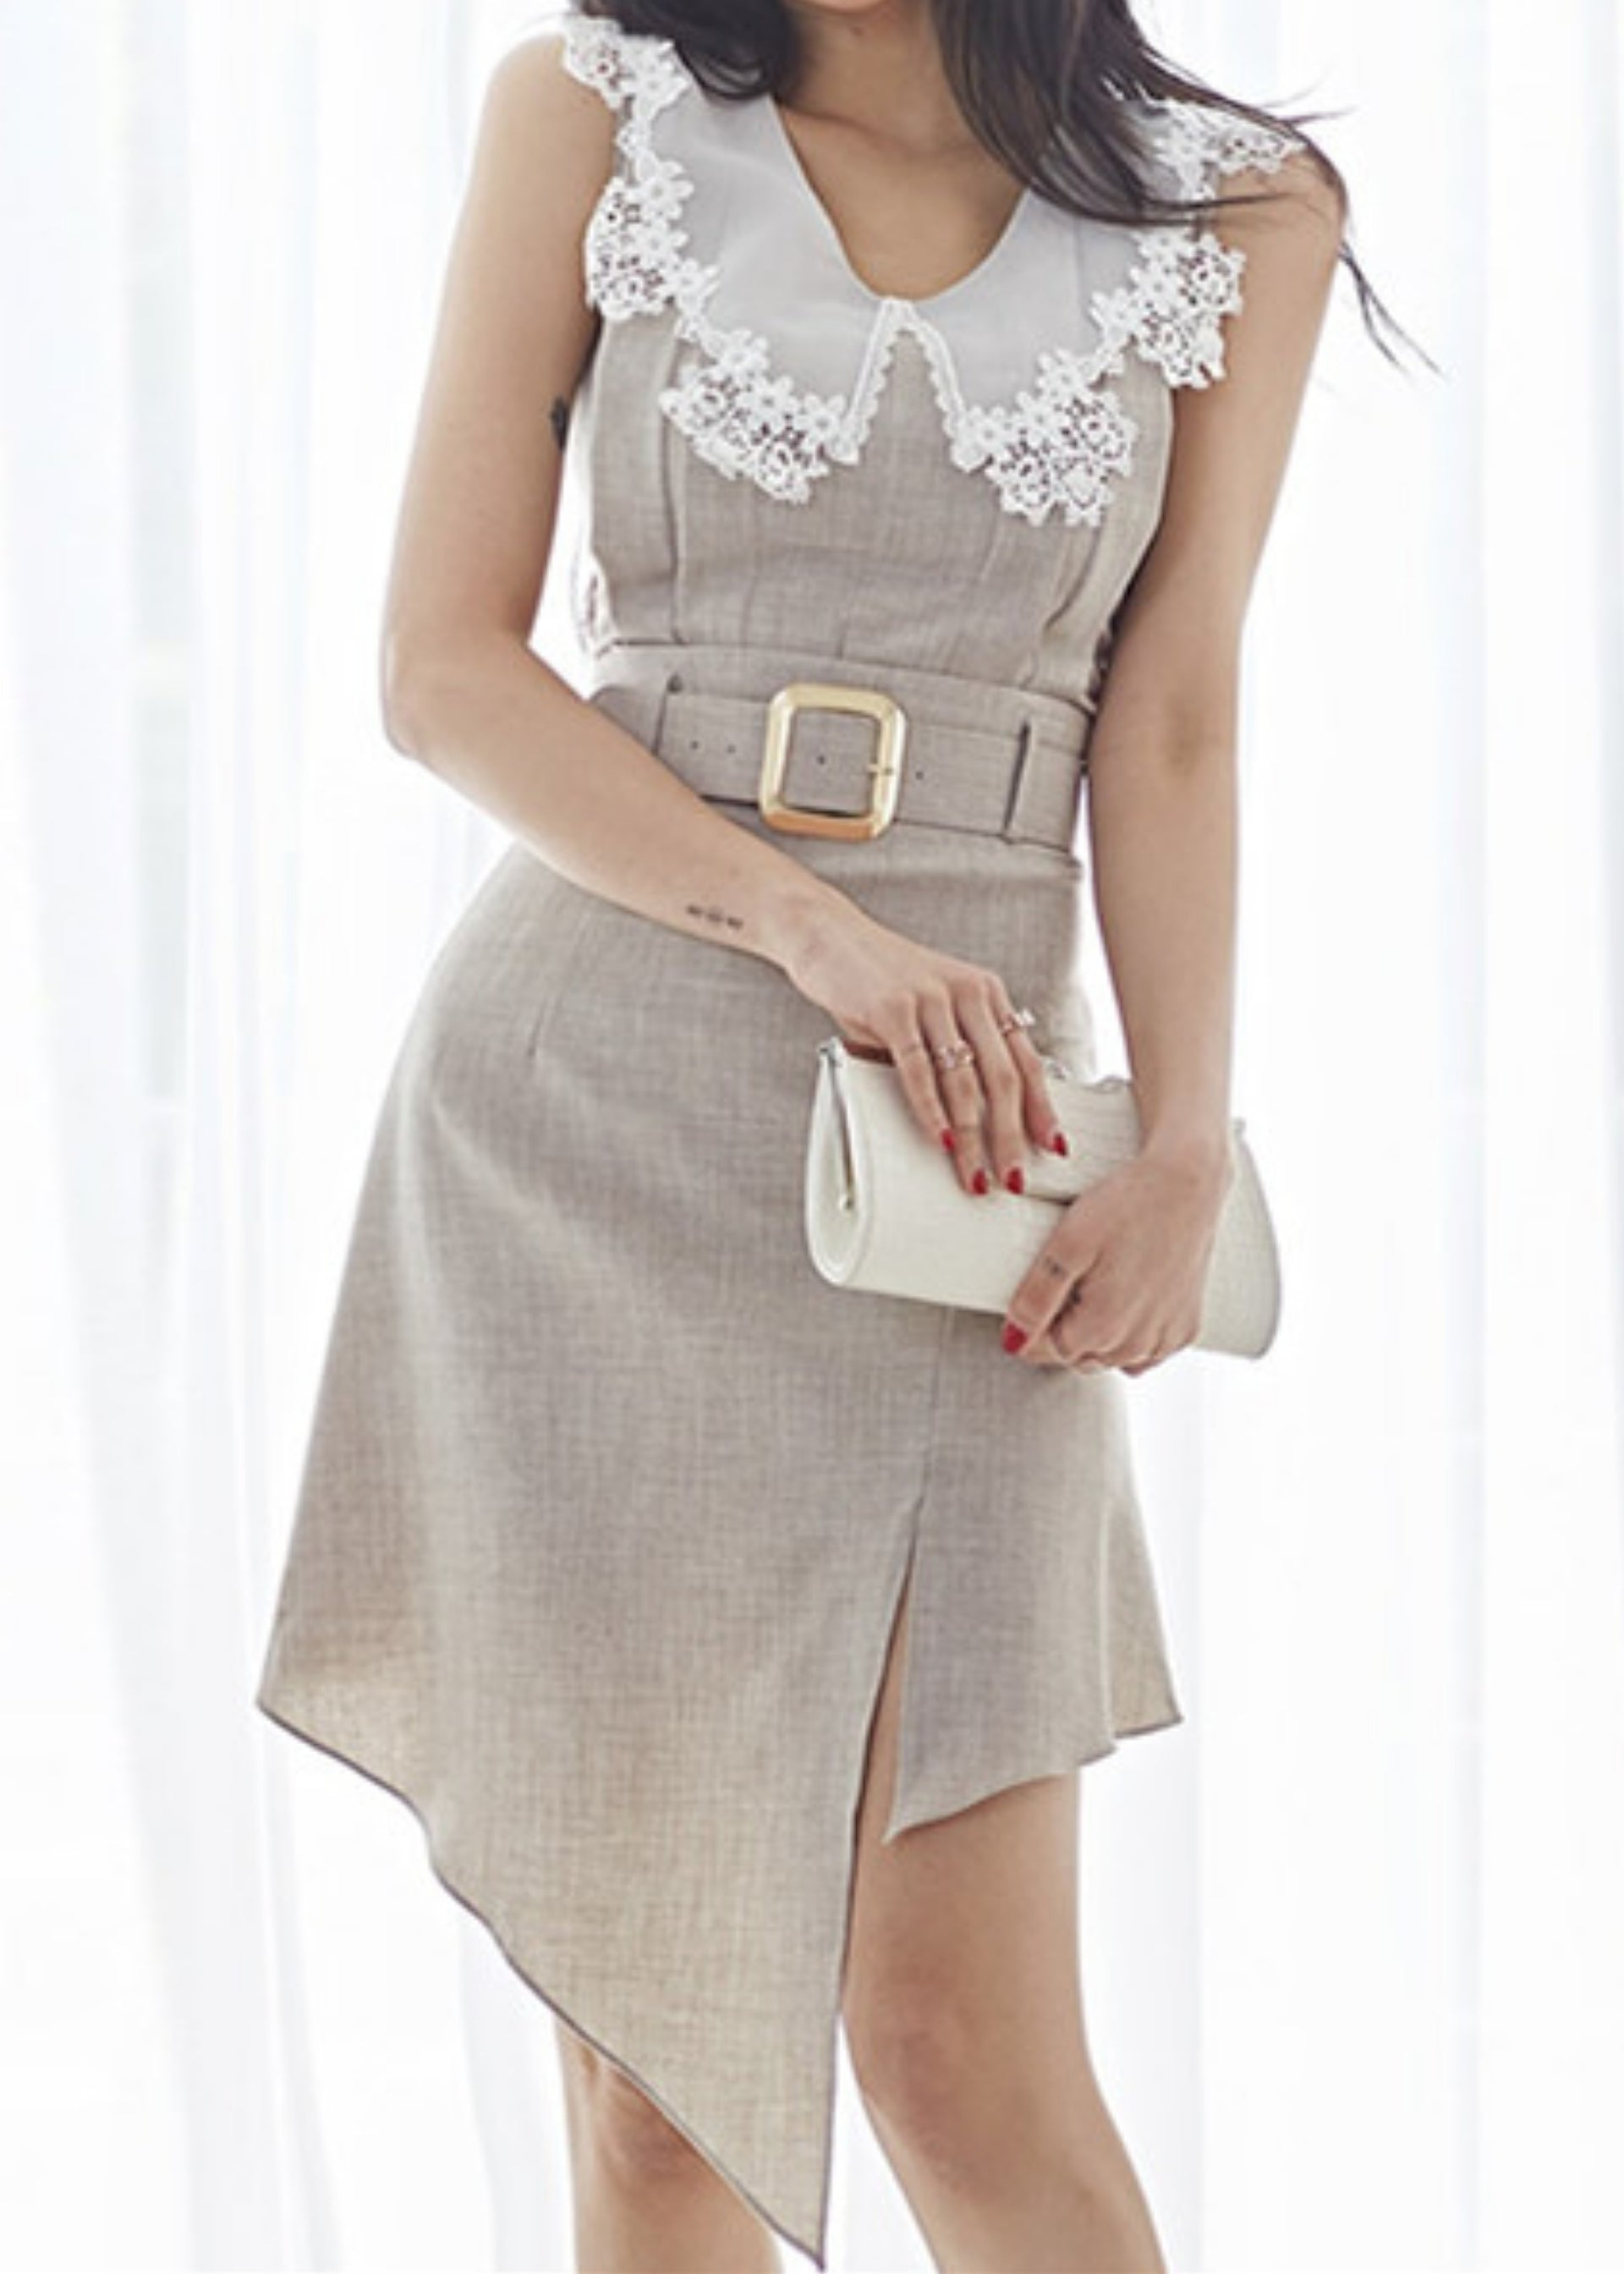 Thalia 2-Piece Set